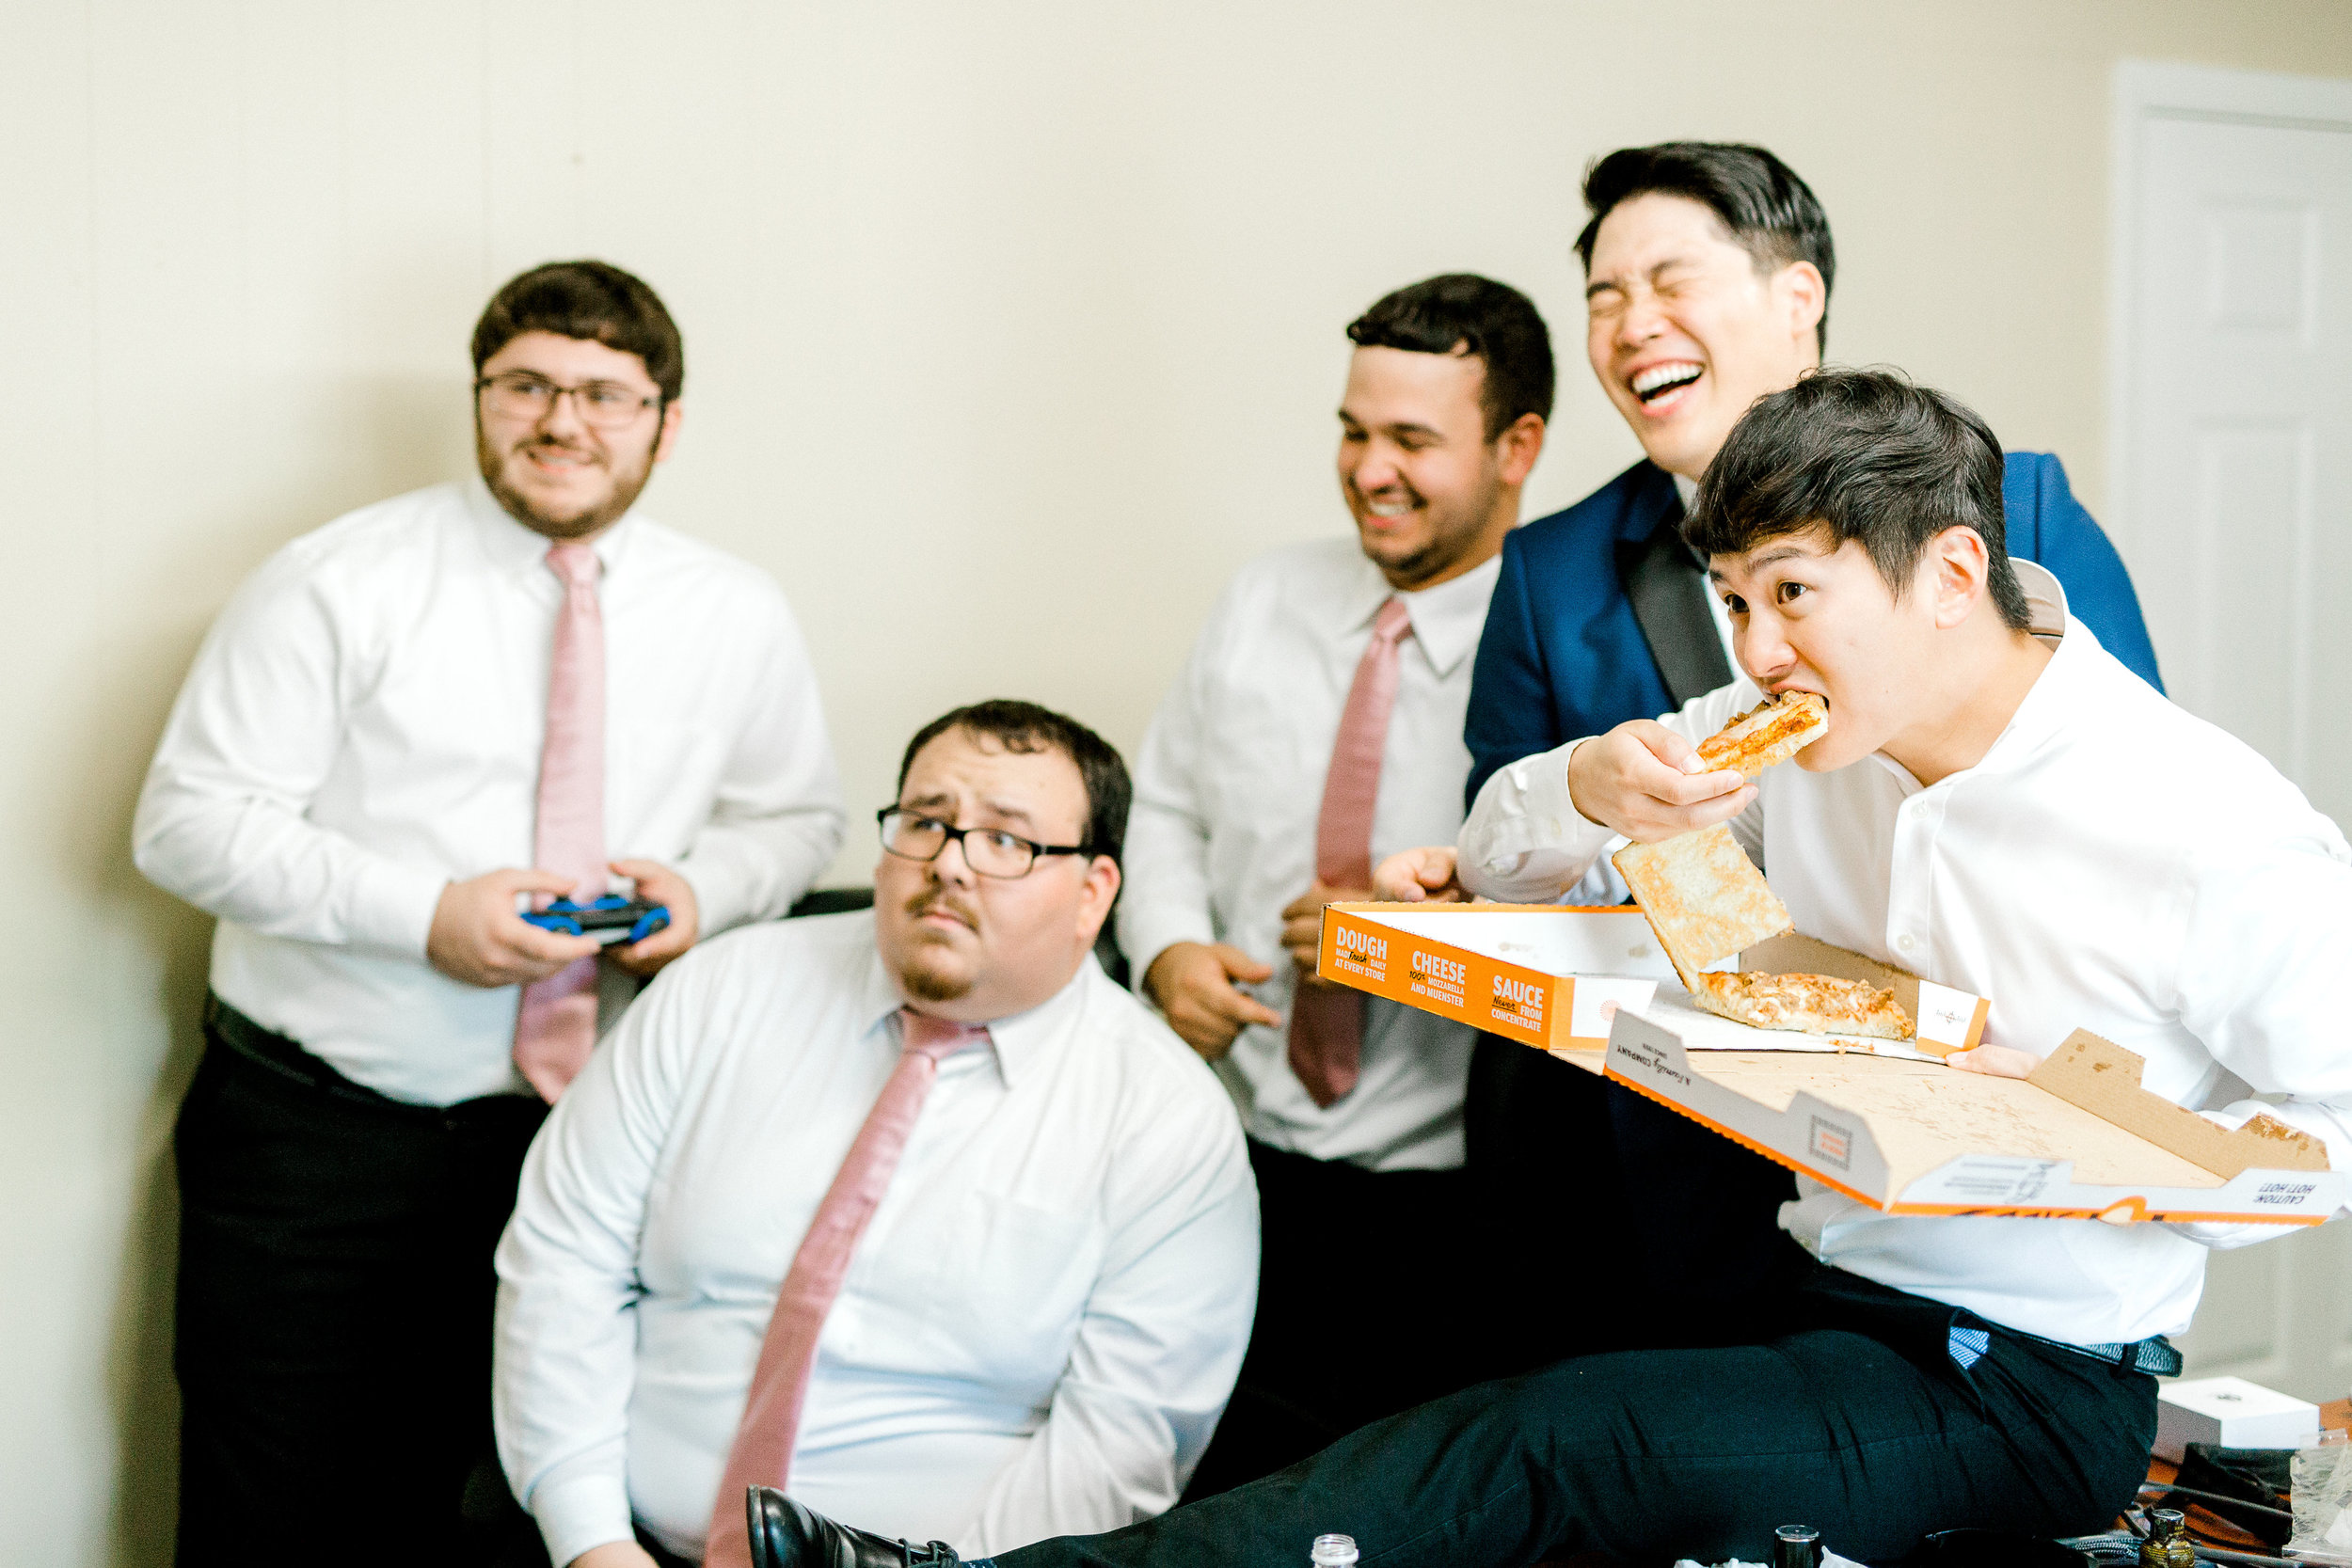 Pizza & video Games for the guys!